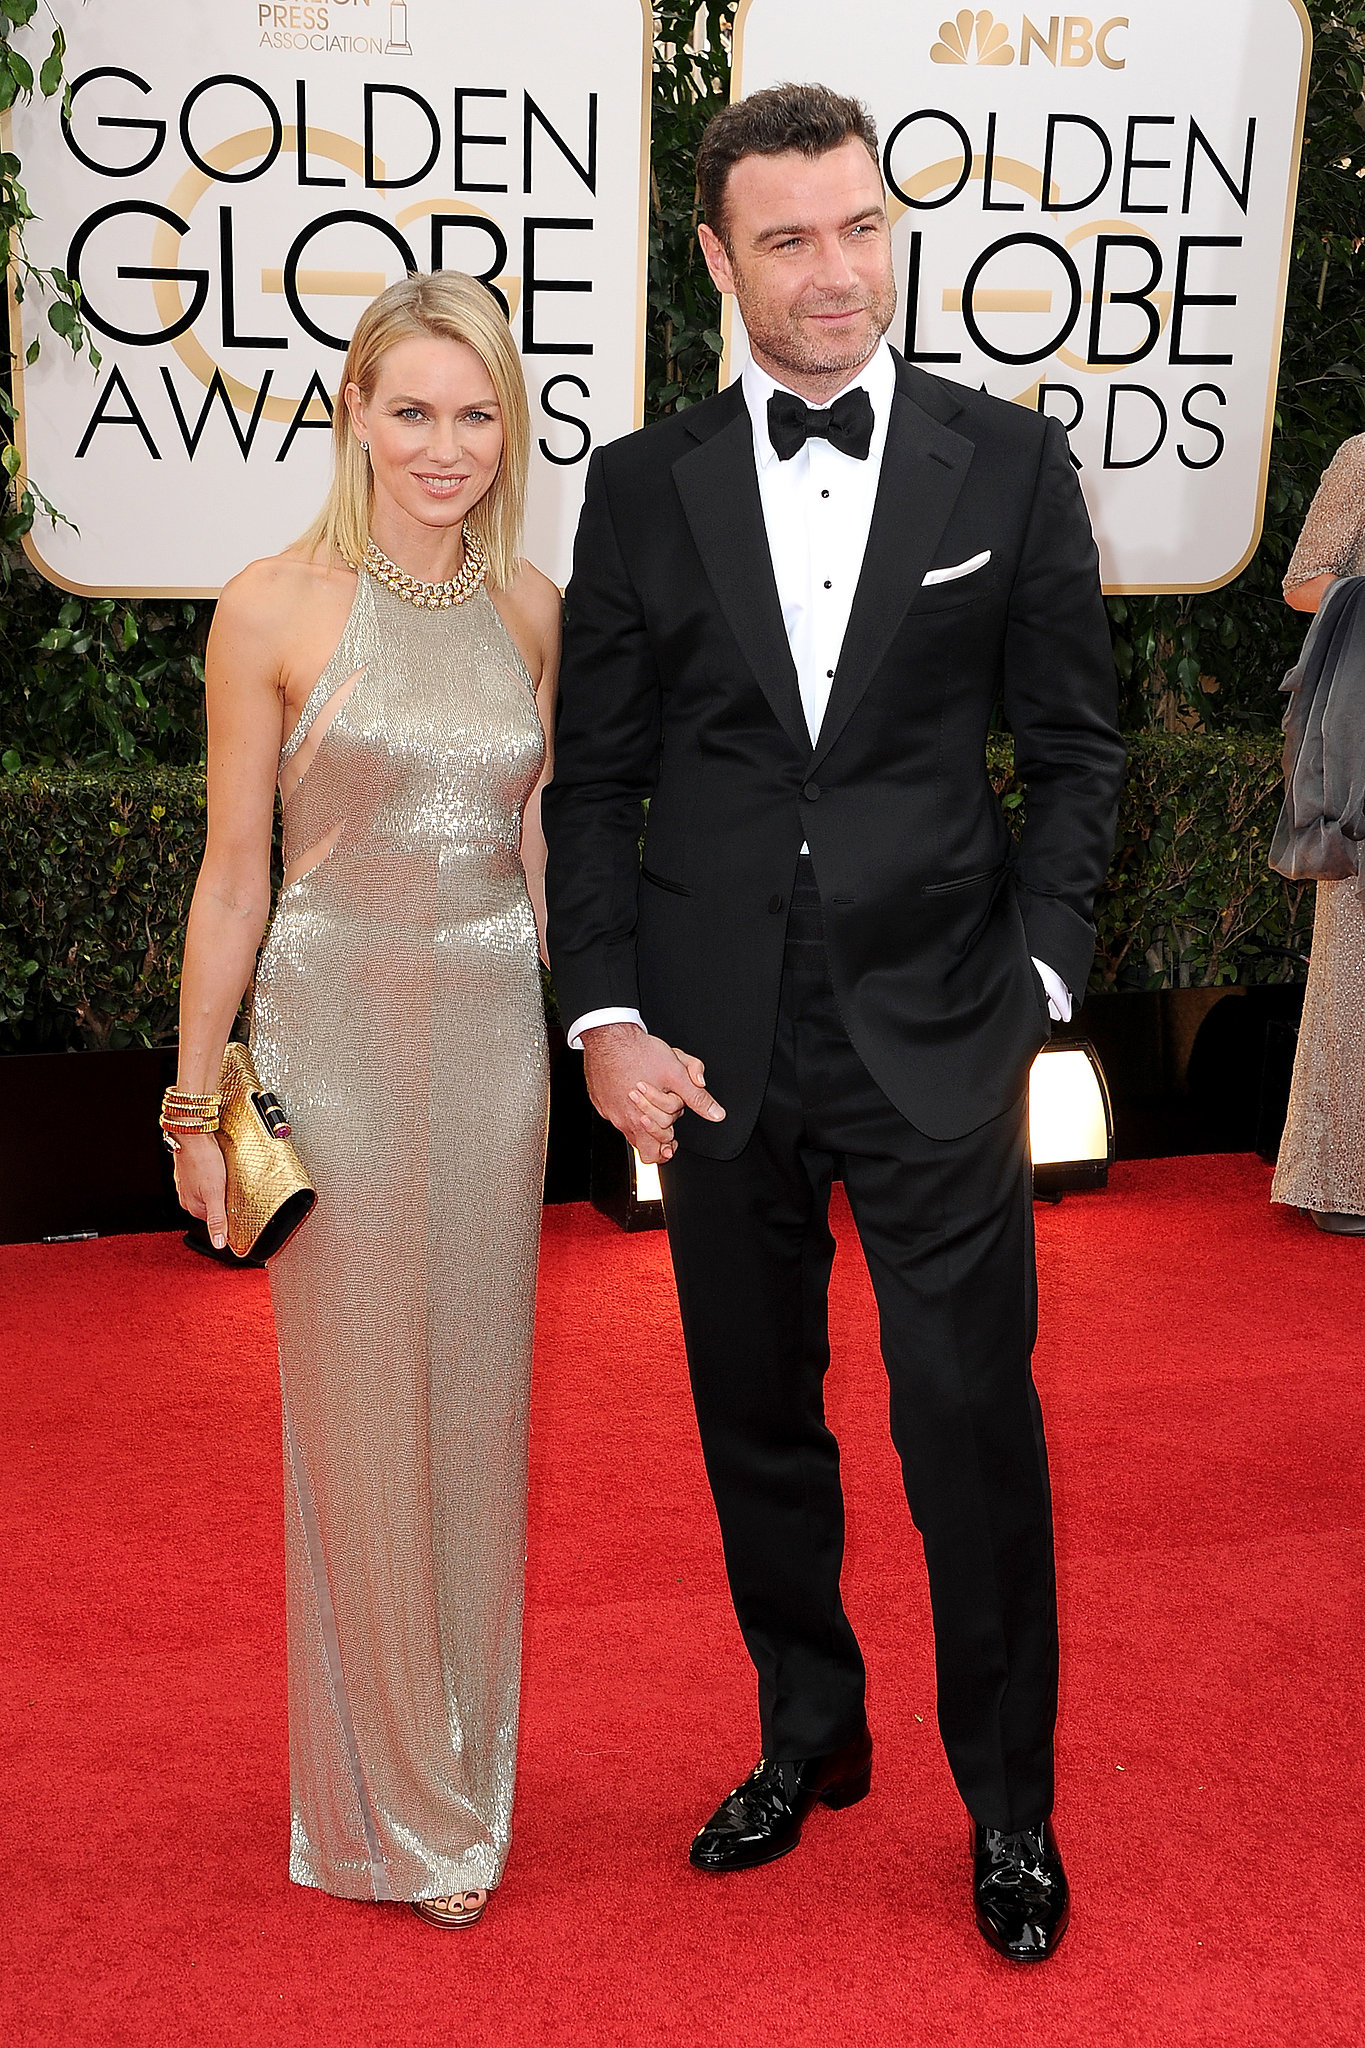 Naomi Watts and Liev Schreiber held hands on the Golden Globes red carpet.